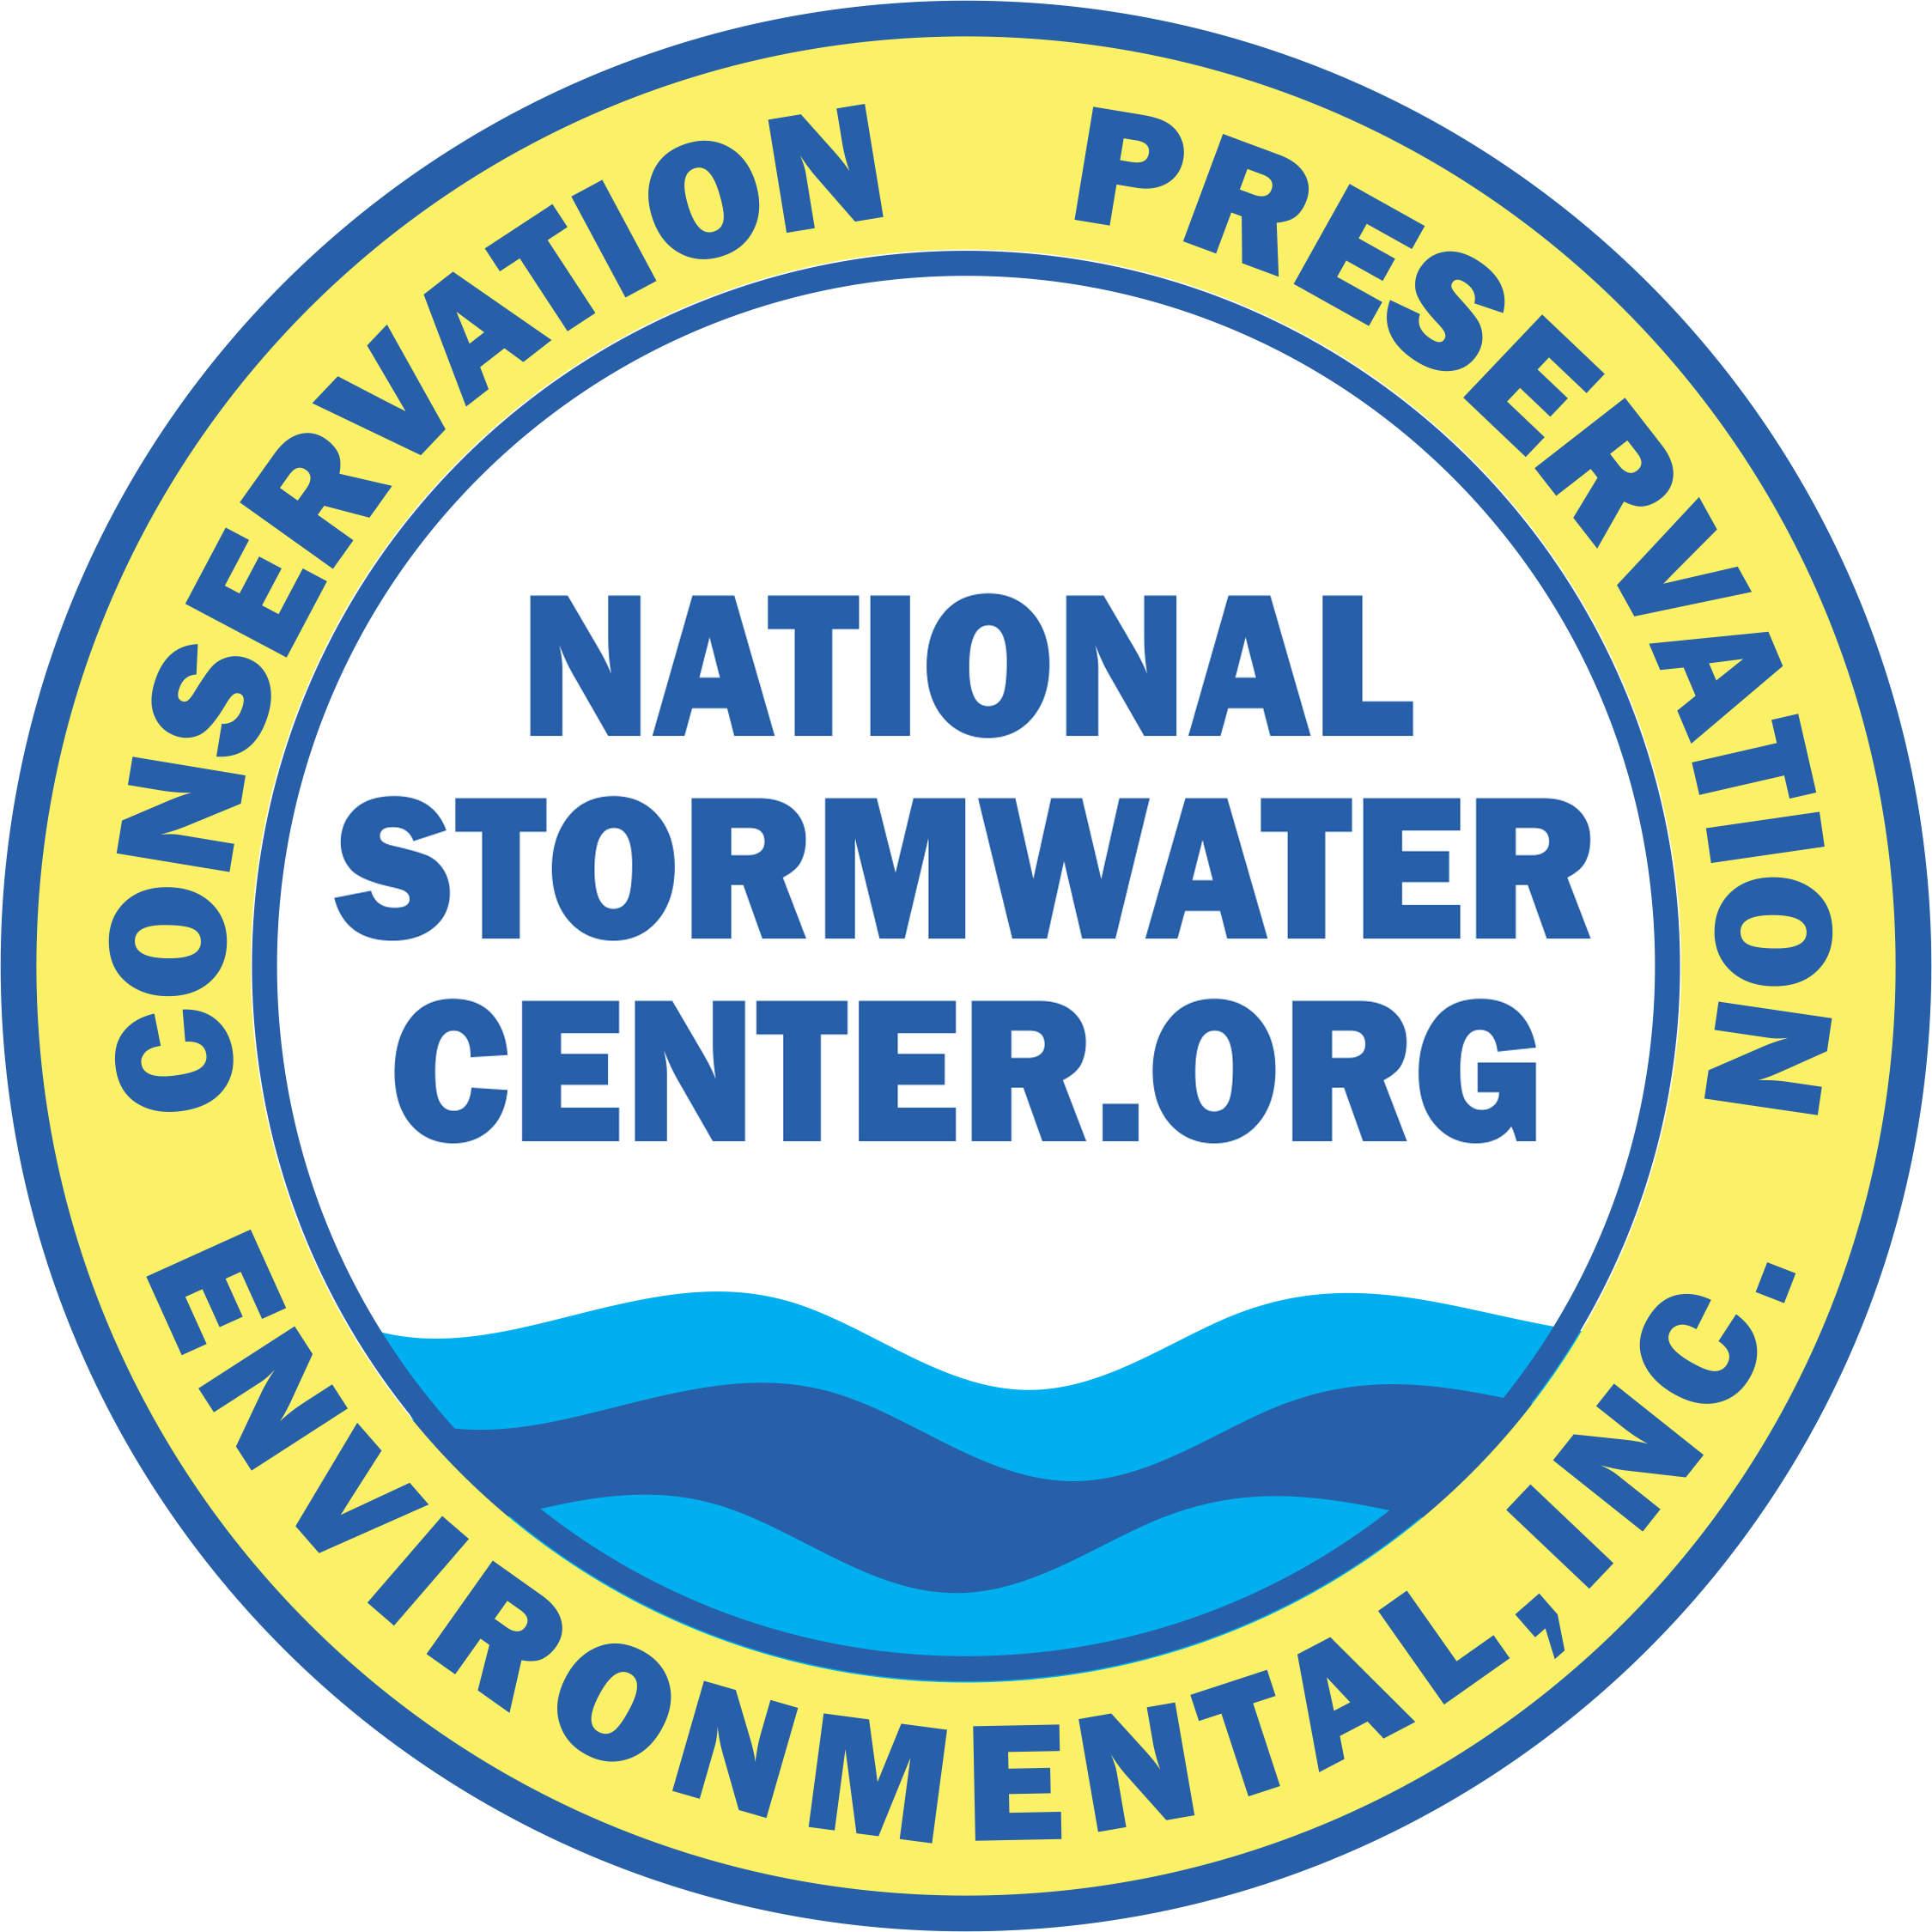 National Stormwater Center non-profit logo